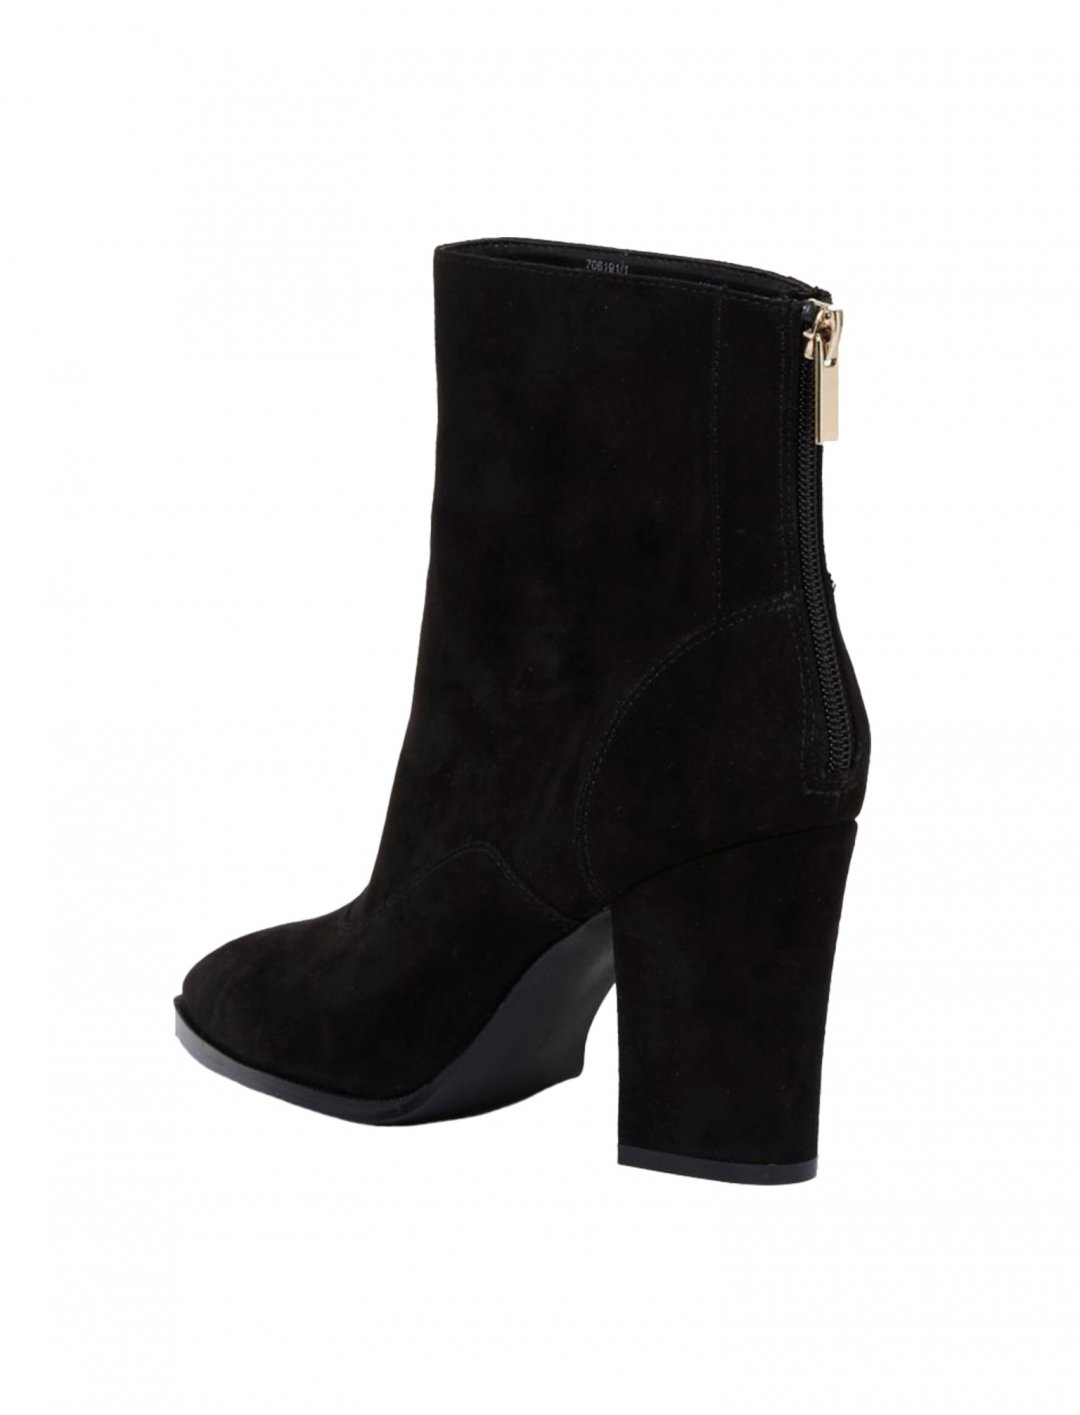 "River Island Heel Boots {""id"":12,""product_section_id"":1,""name"":""Shoes"",""order"":12} River Island"